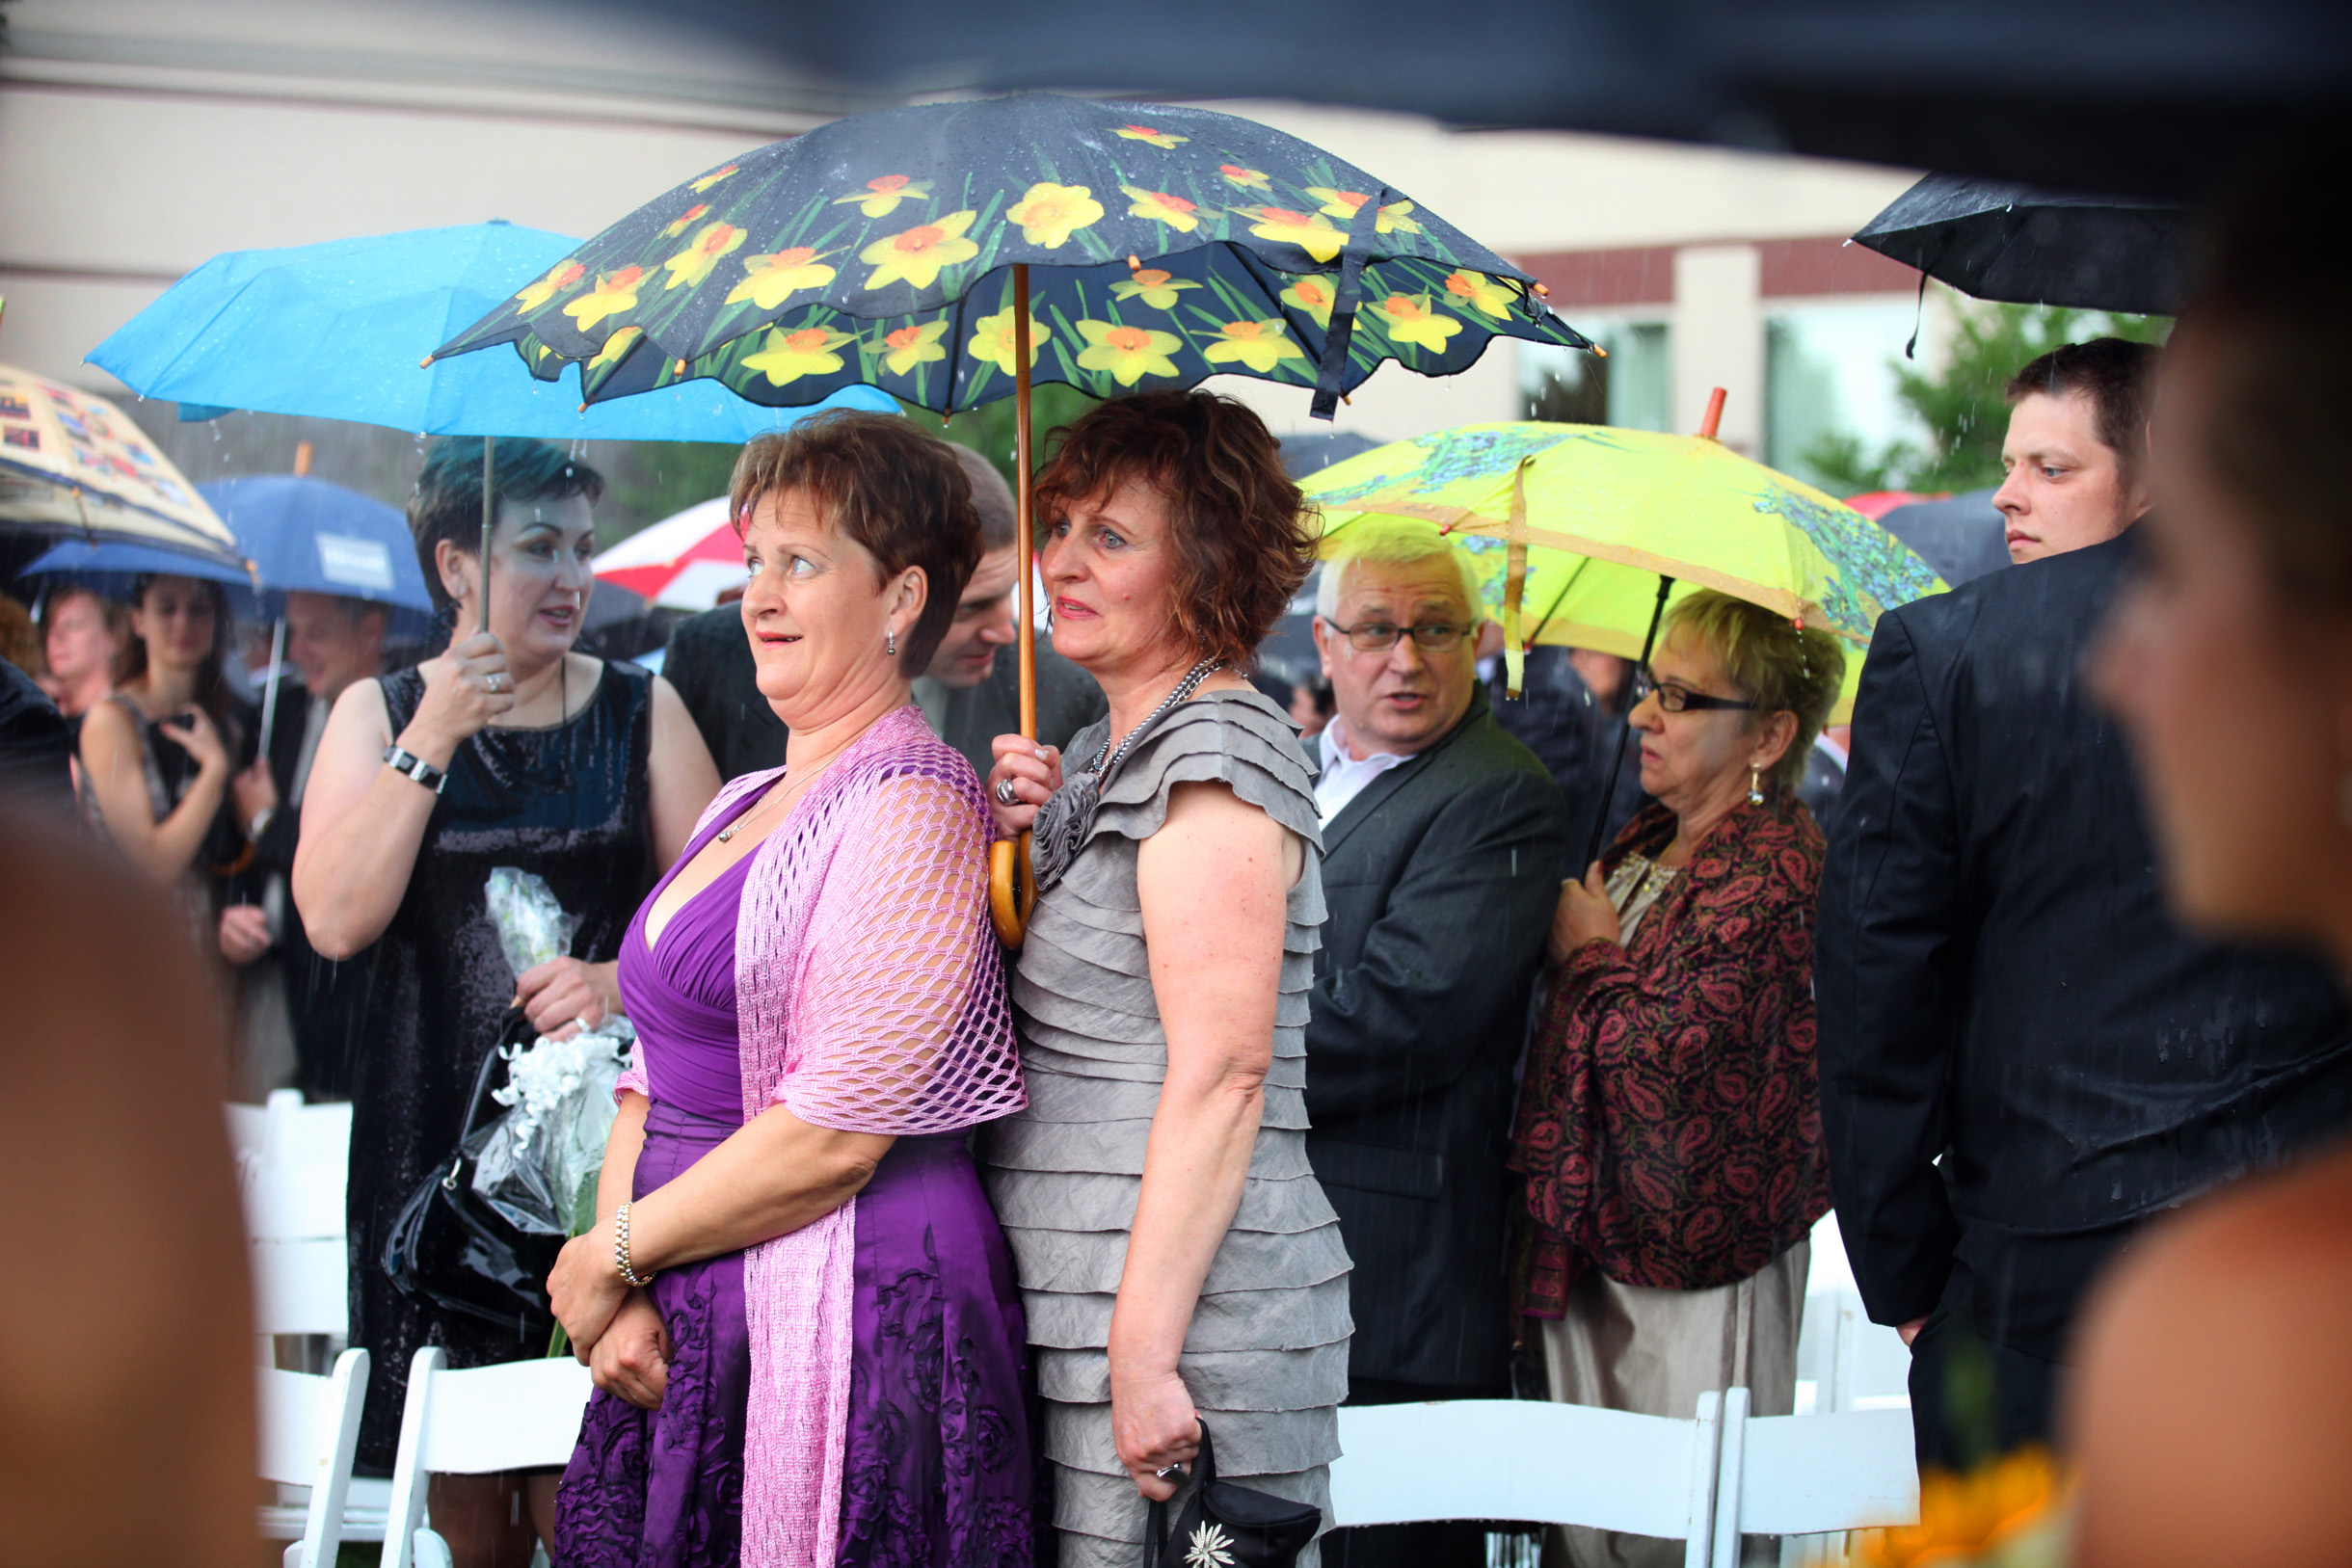 Wedding guests standing under umbrellas during a heavy rain storm downpour